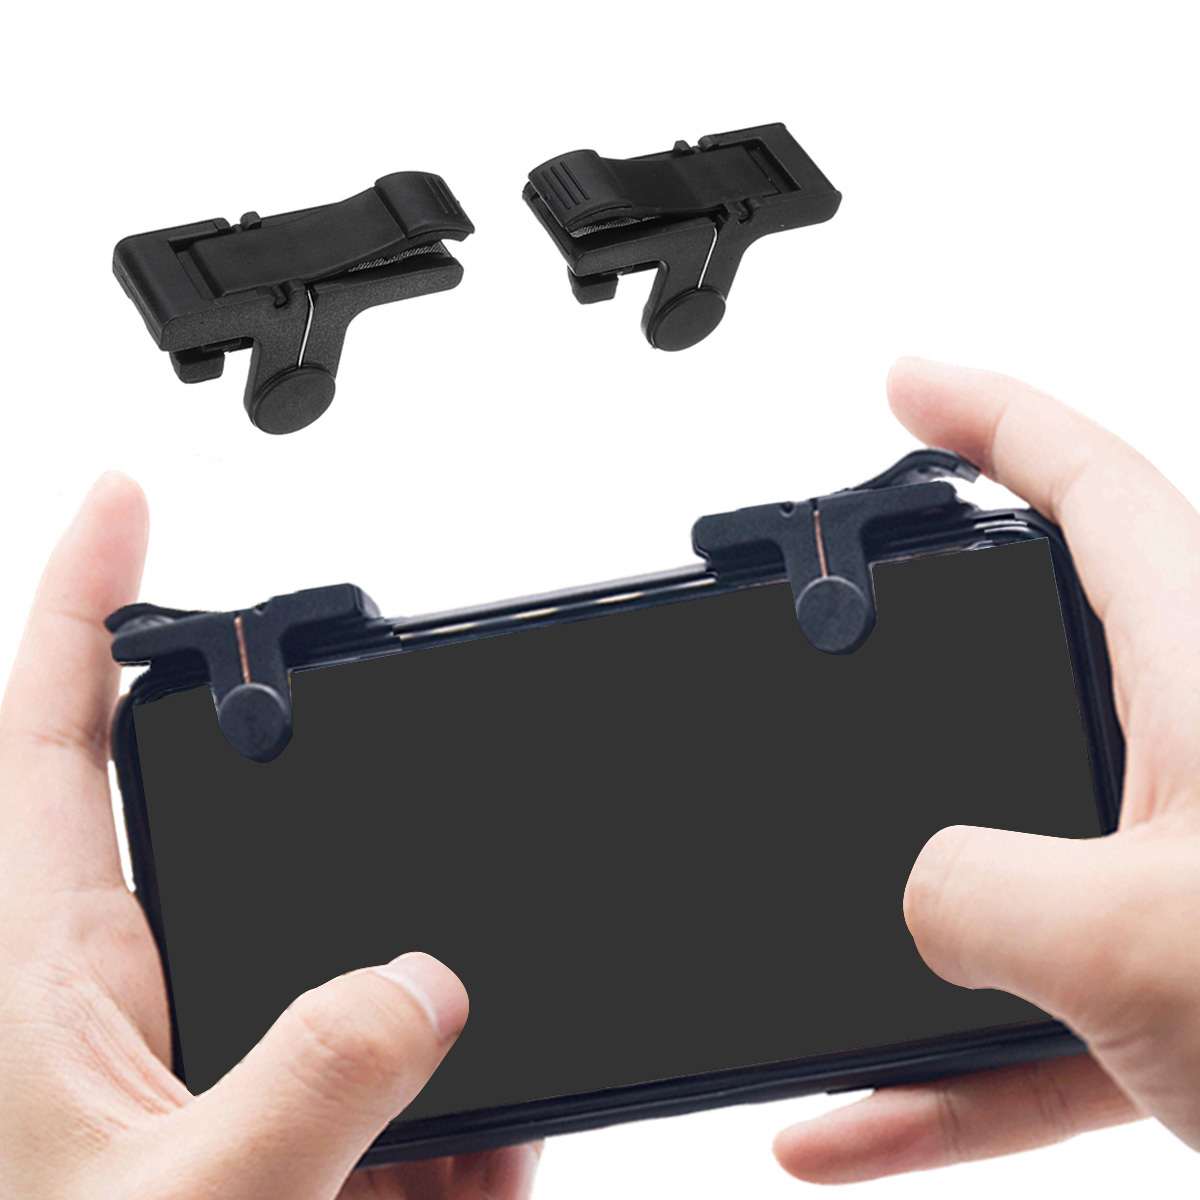 For PUBG Smartphone Gaming Trigger Games Button Aim Key L1 R1 Shooter Controller Joystick Gamepad for IOS Andriod